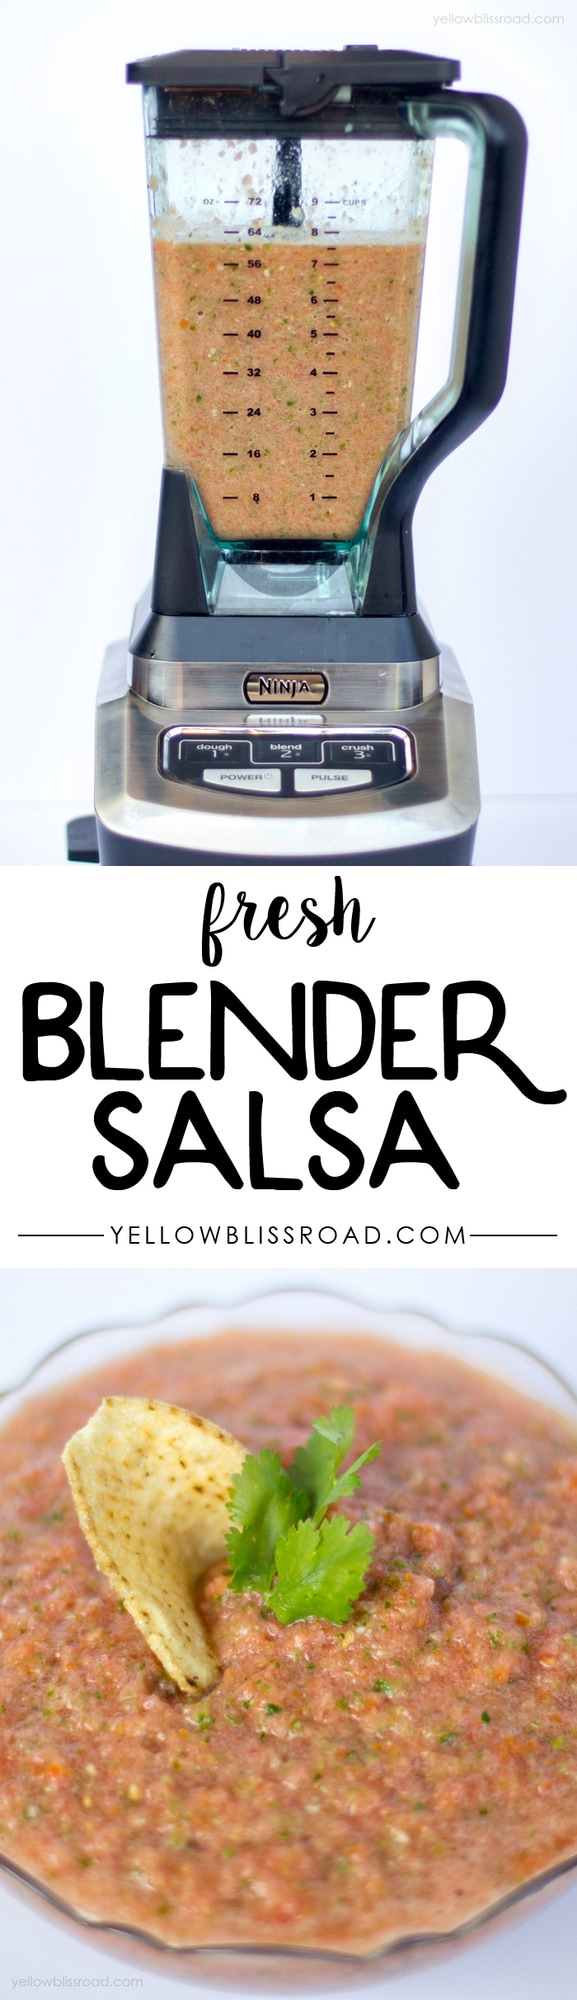 Super Easy and Full of Flavor Blender Salsa